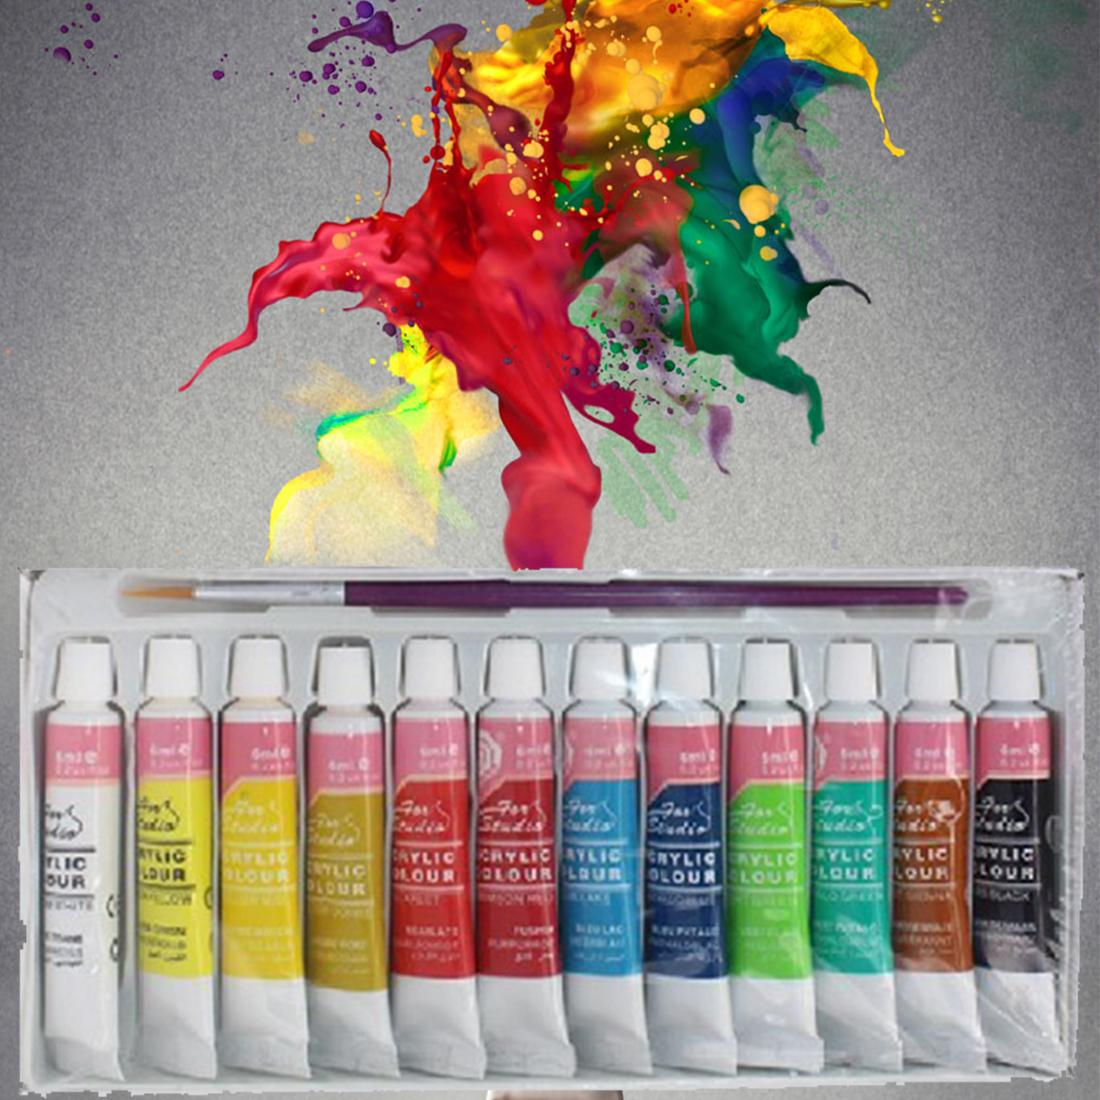 12 Colors Professional Acrylic Paints Set Hand Painted Wall Painting Textile - intl